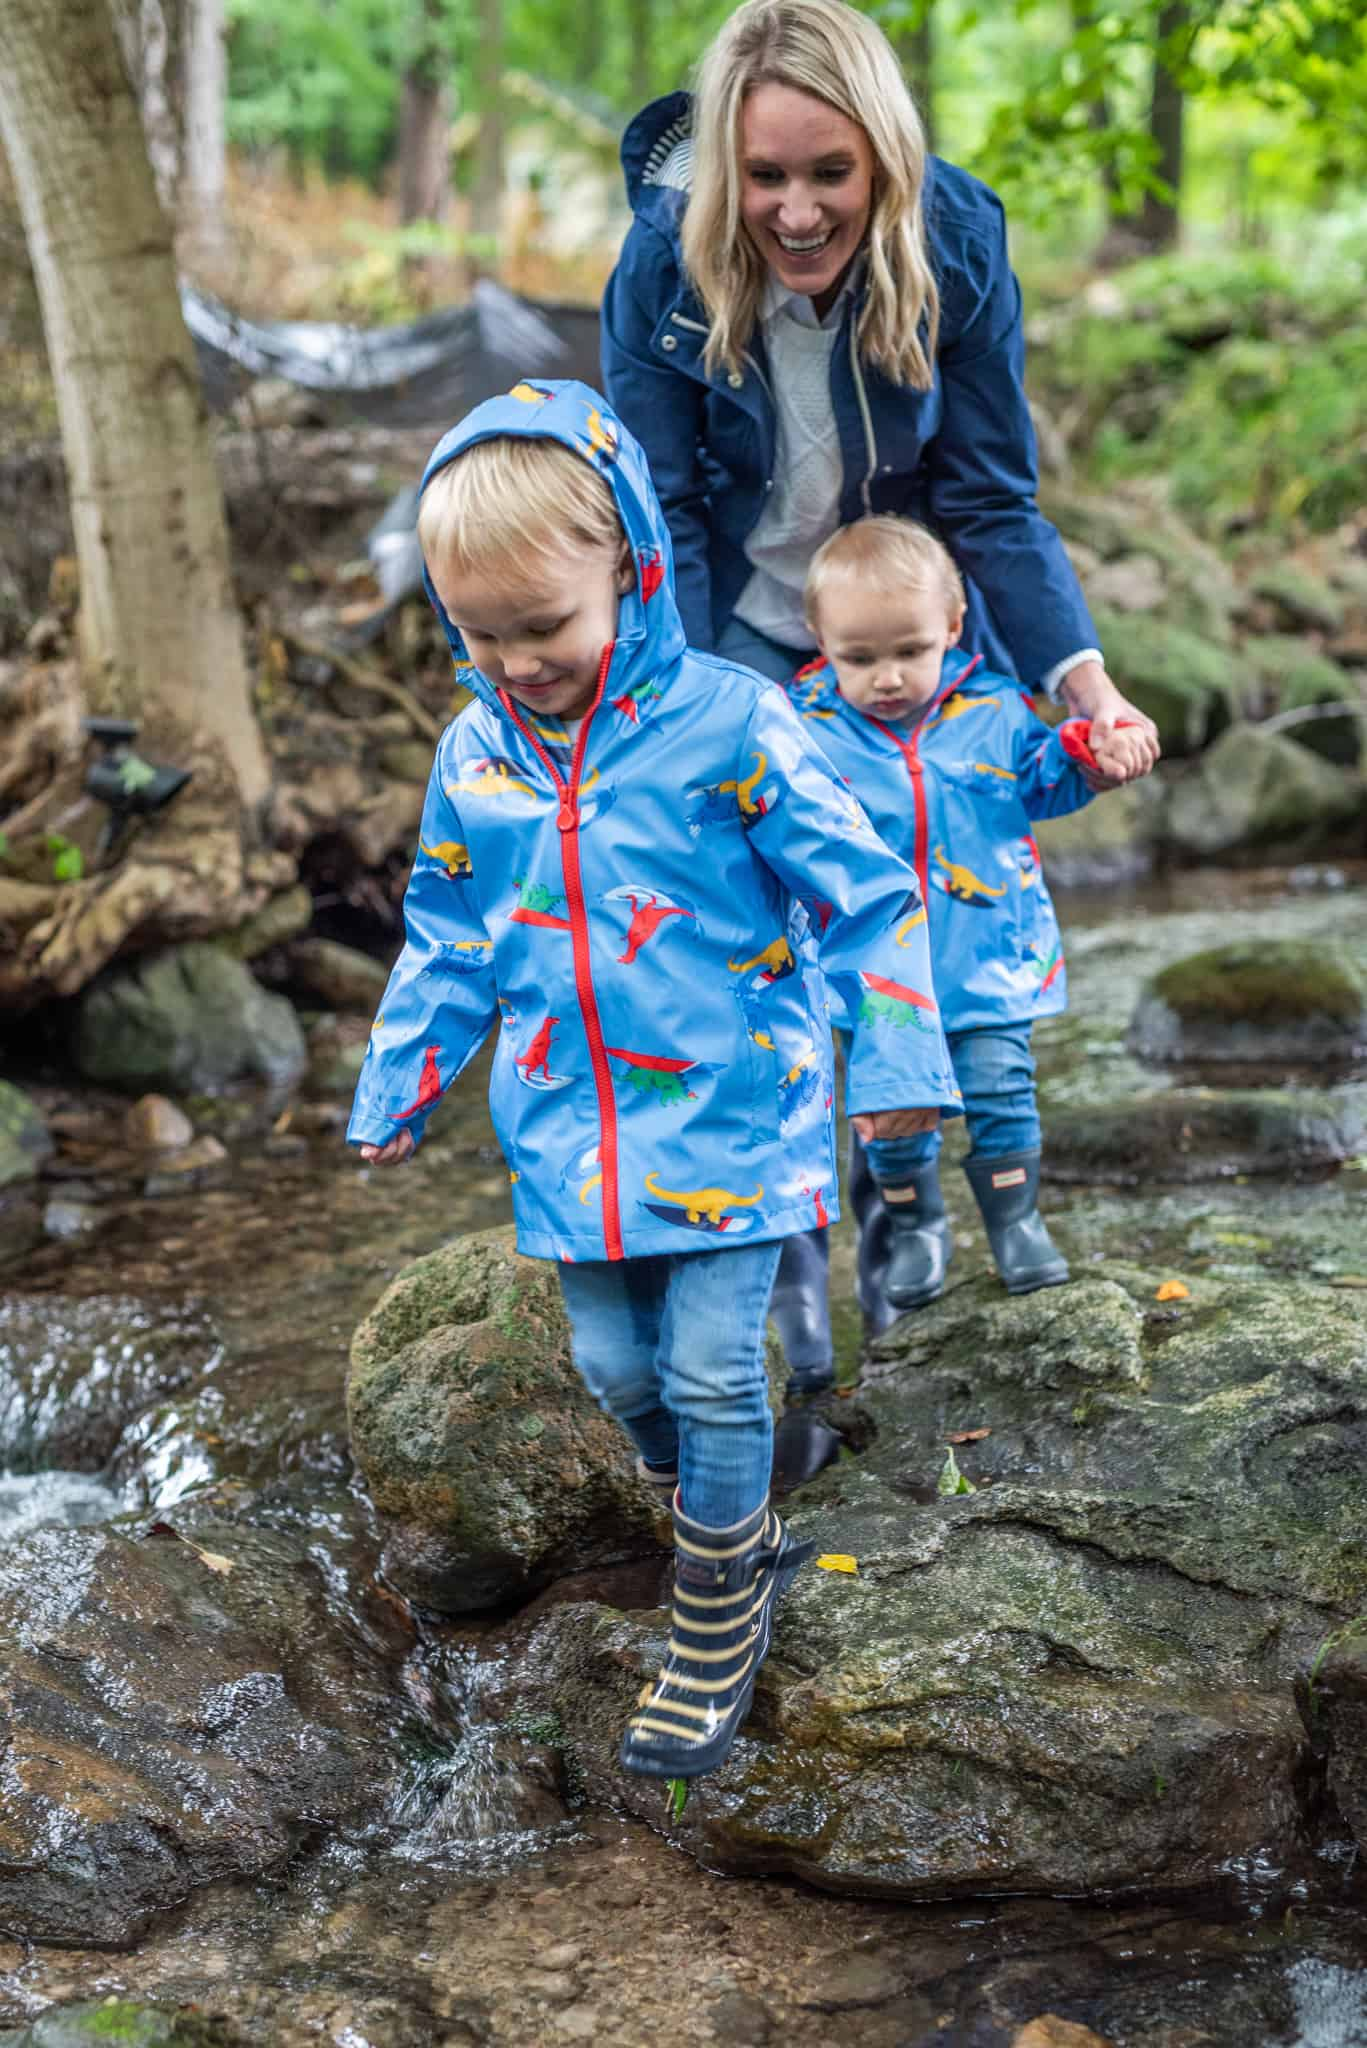 Bath and Bedtime Routine with Aveeno® Baby featured by top Michigan lifestyle blogger, The House of Navy: mom and boys playing in stream | Aveeno Baby by popular Michigan motherhood blog, House of Navy: image of a mom and her two young boys playing outside in a stream.